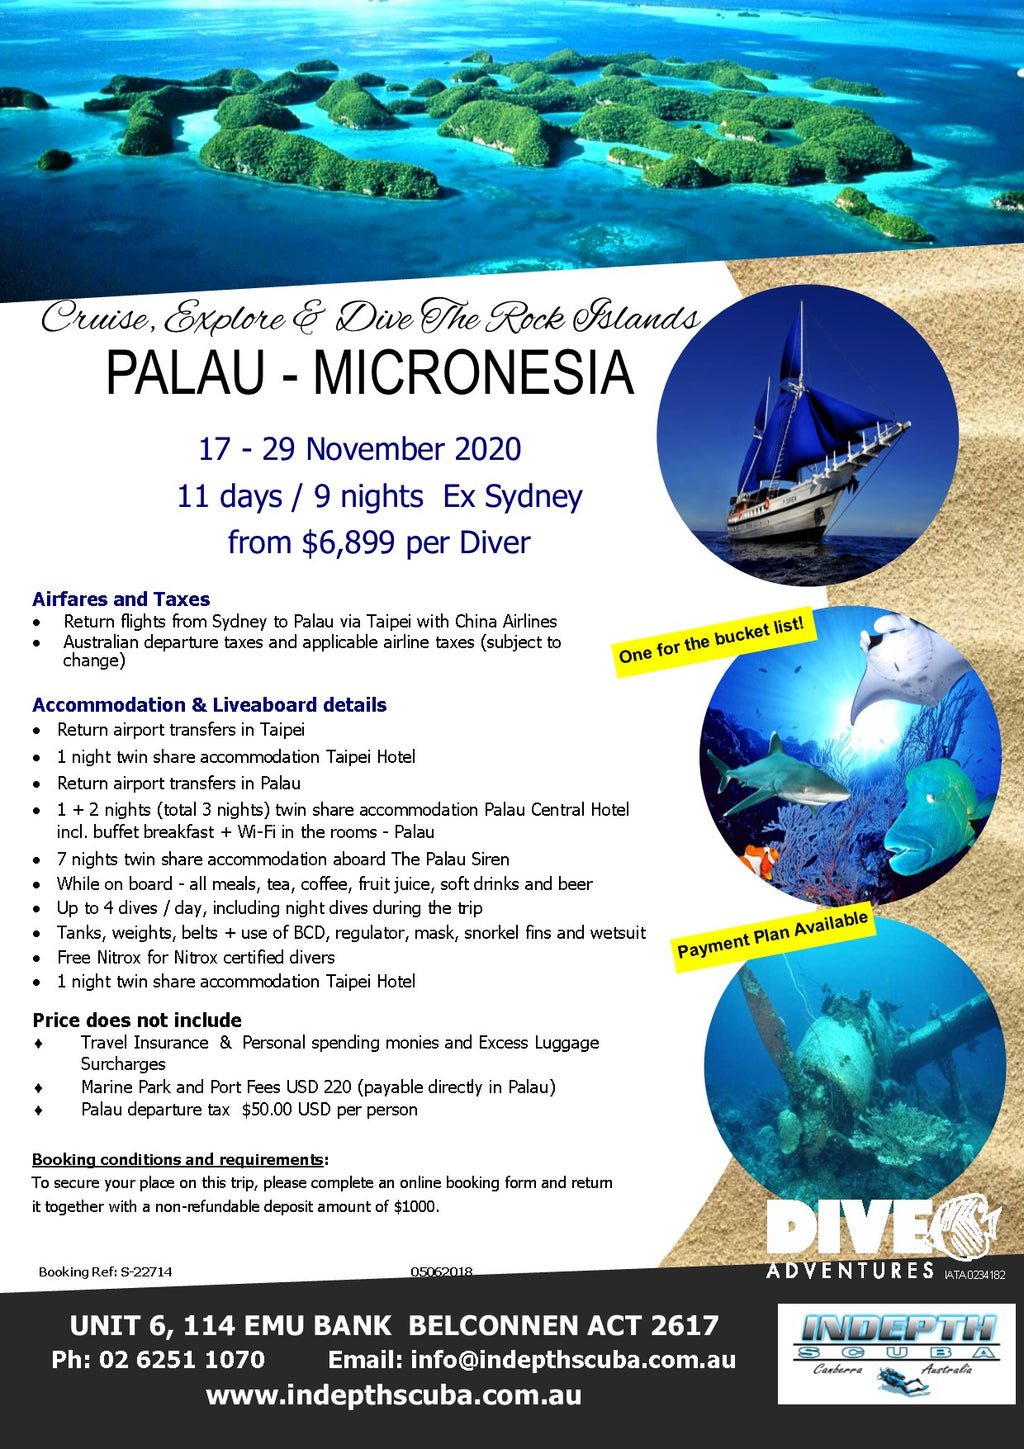 Dive Palau, Micronesia - 17th to 29th November 2020